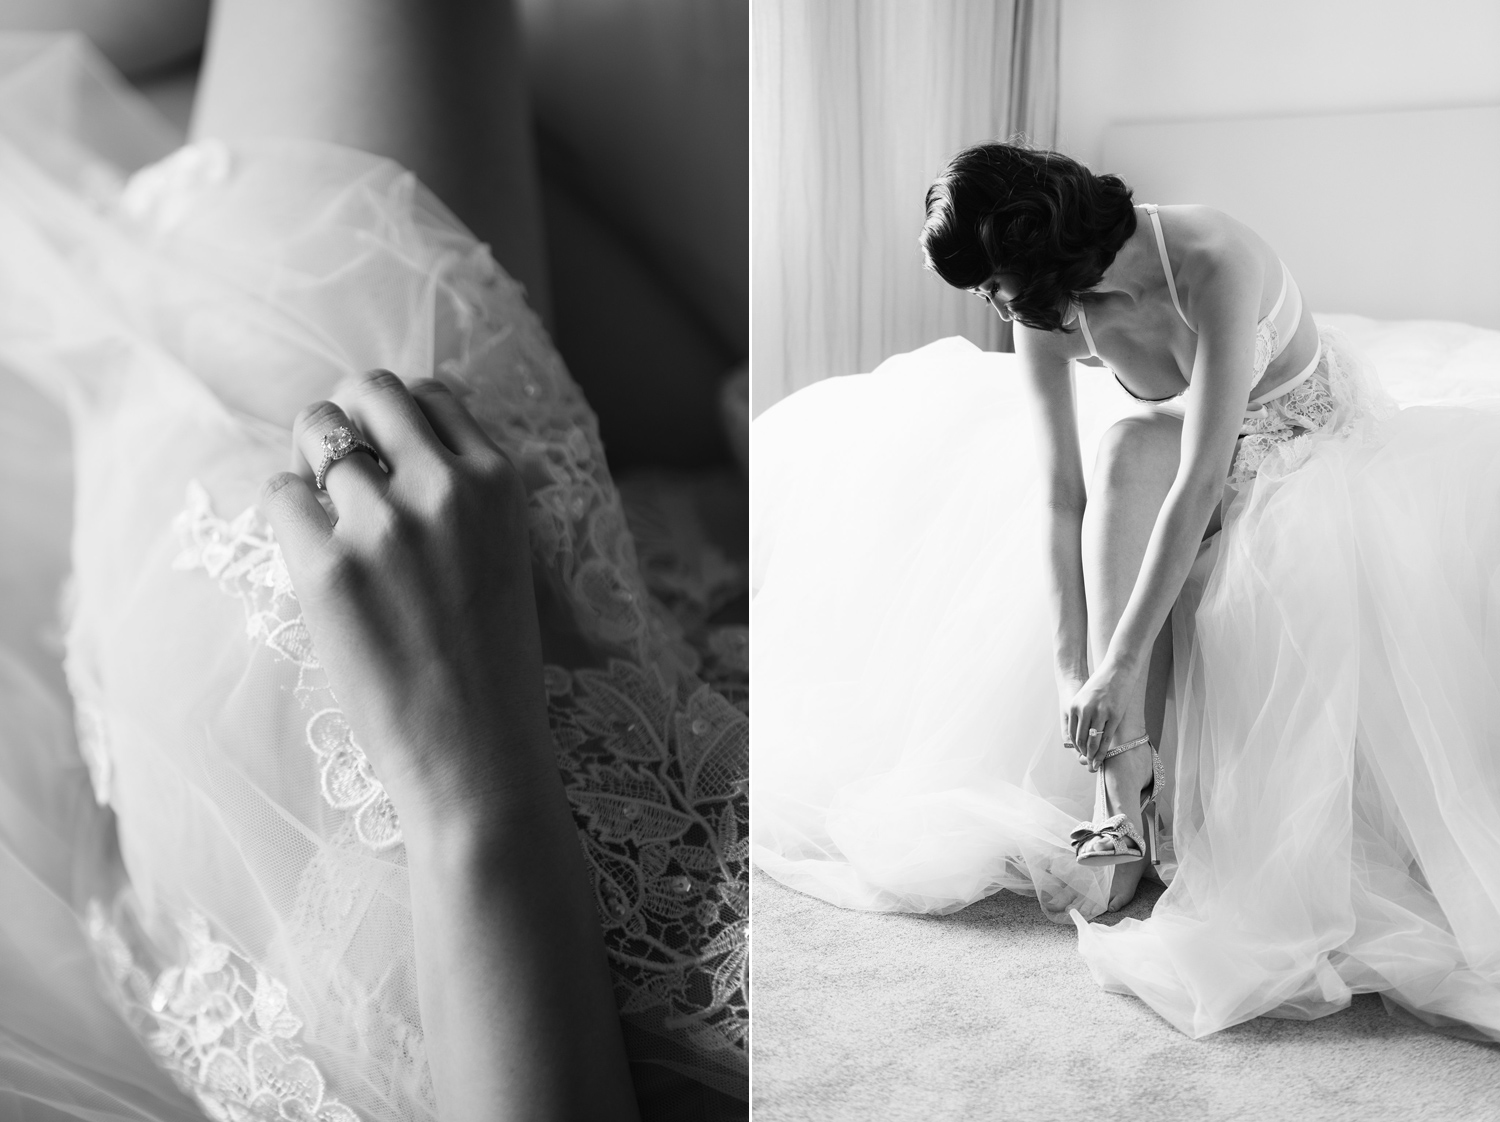 307-katie-mitchell-paris-wedding-elopement-photographer-france.jpg